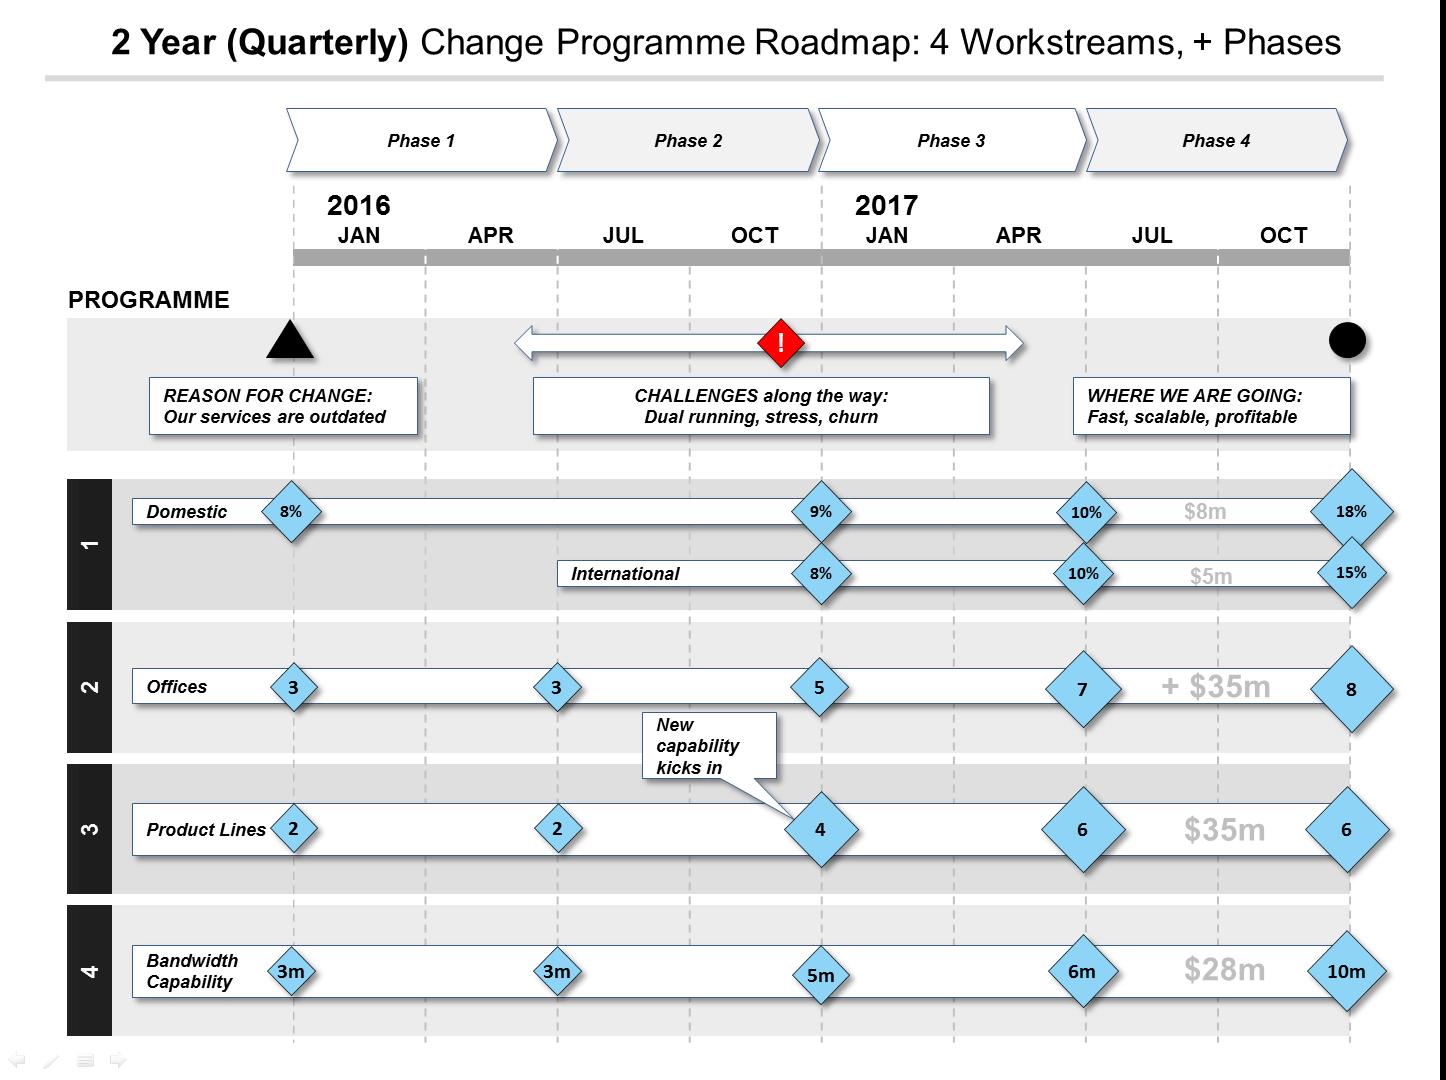 Powerpoint Change Programme Roadmap Template - Information technology roadmap template